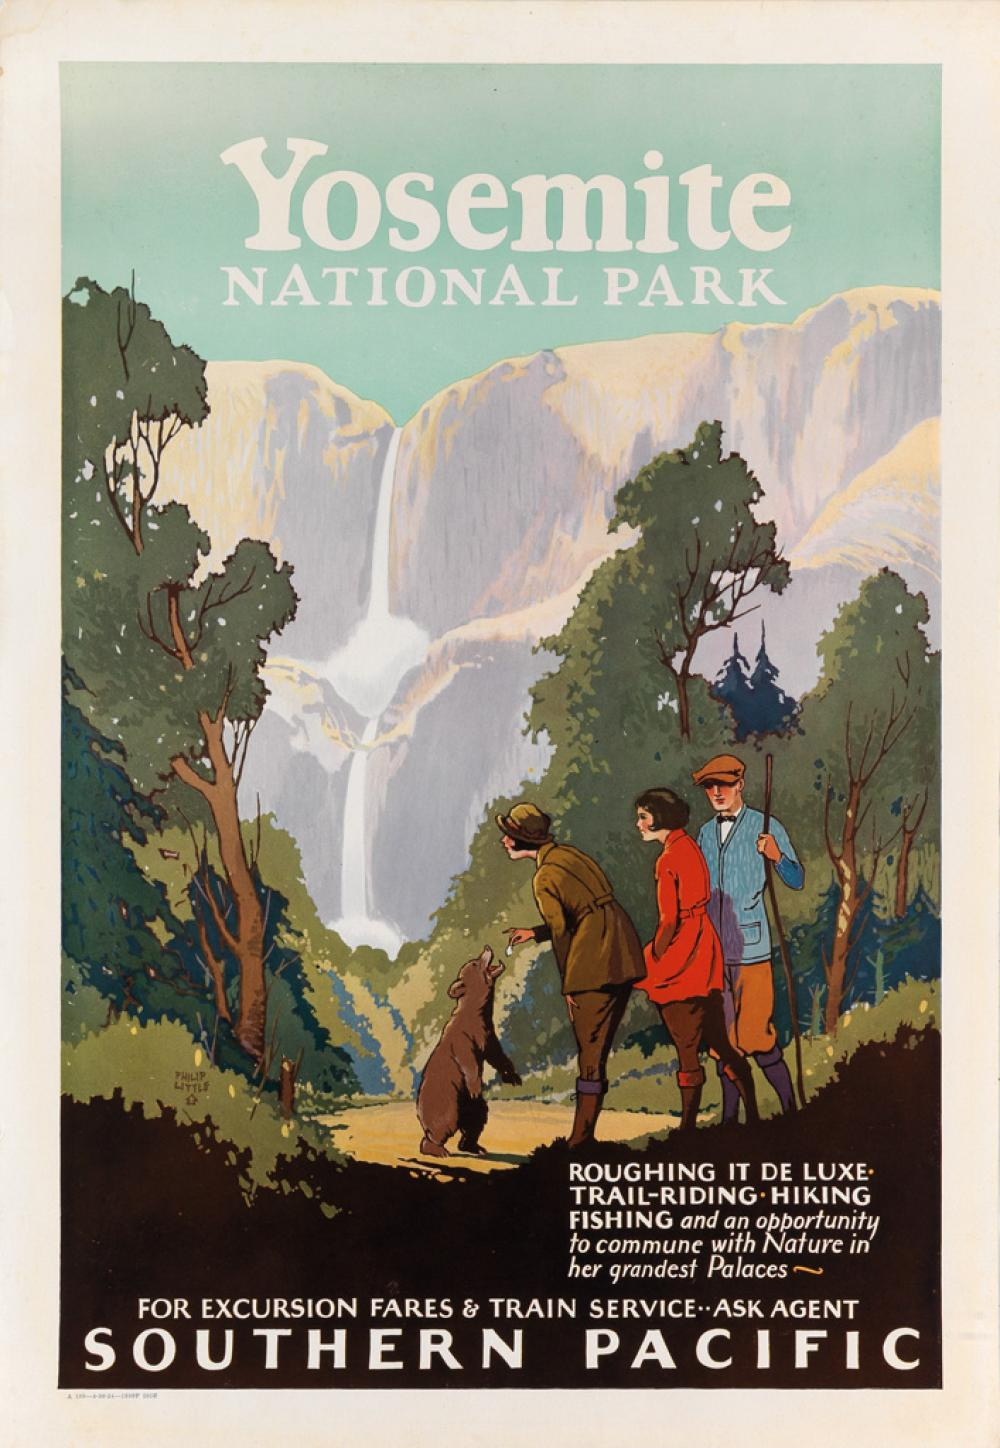 PHILIP LITTLE (1887-1960). YOSEMITE NATIONAL PARK / SOUTHERN PACIFIC. 1924. 23x16 inches, 58x40 cm.